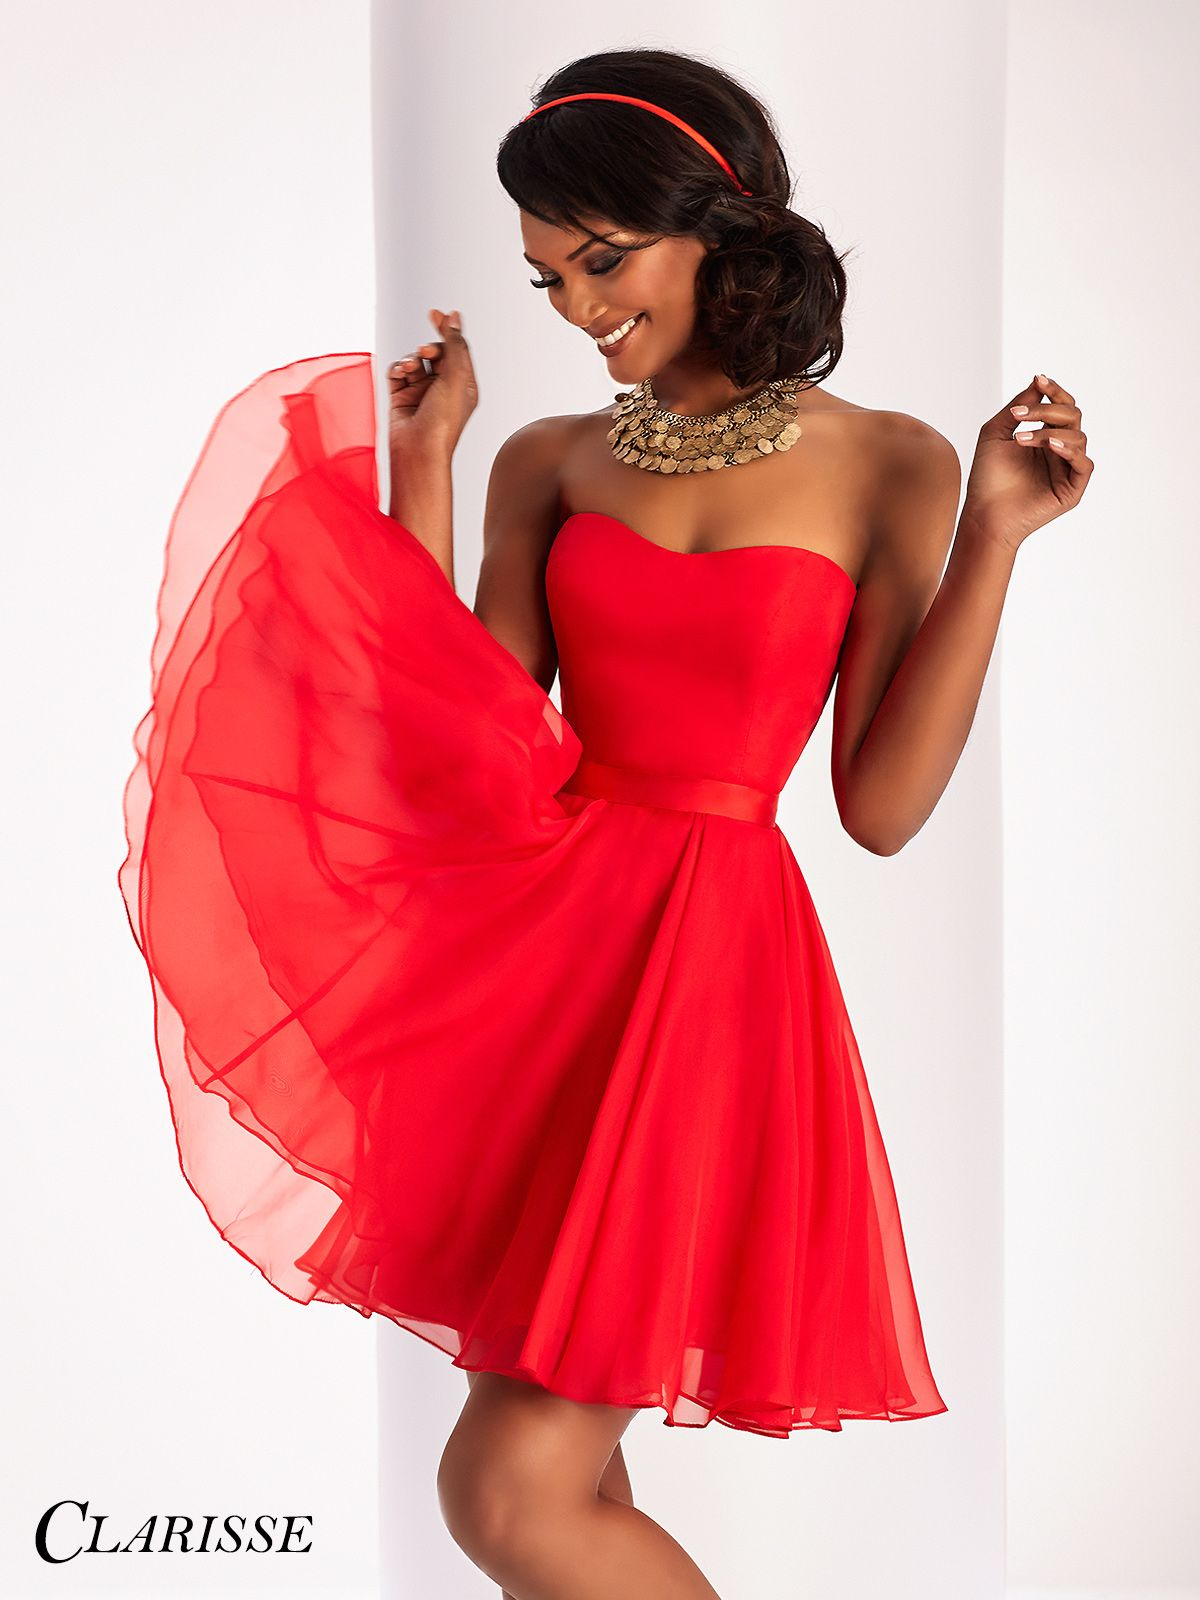 Clarisse prom dress short strapless and simple chiffon dress